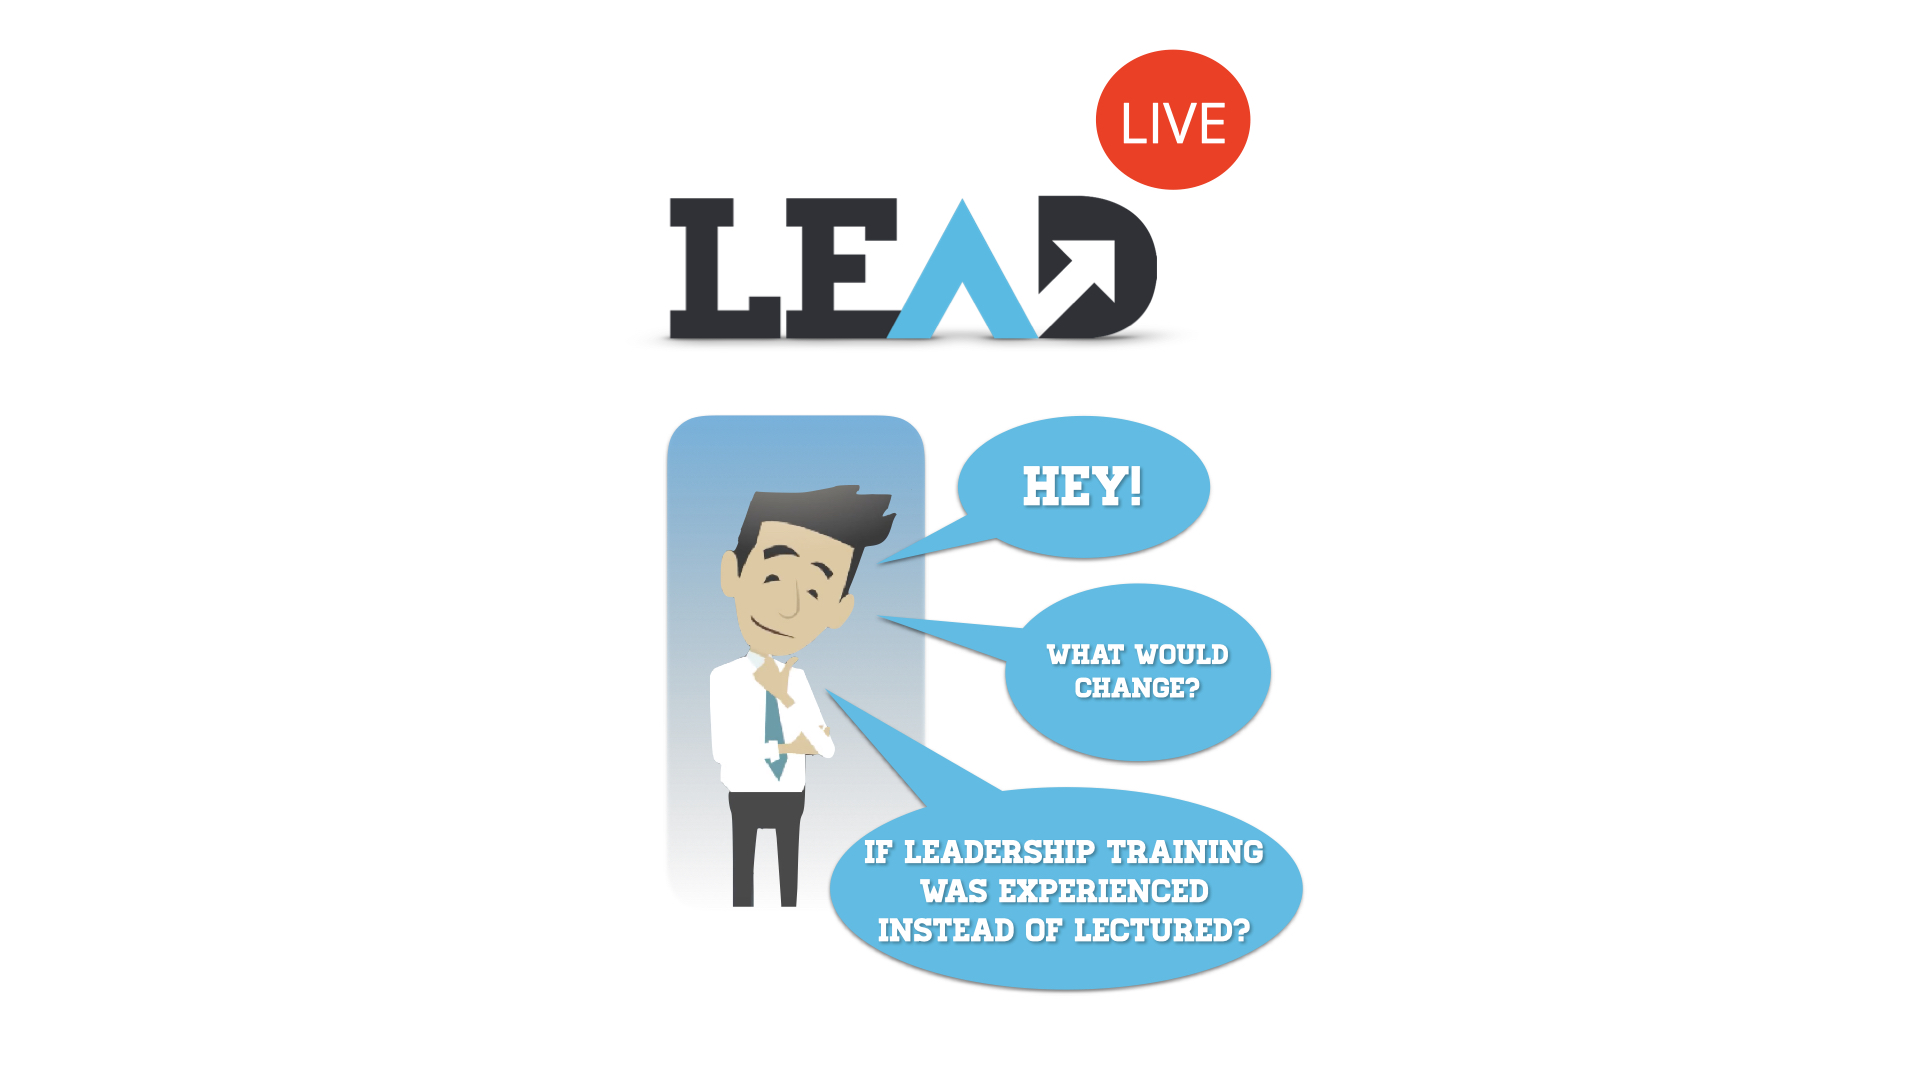 LEAD Live: The LEAD Experience